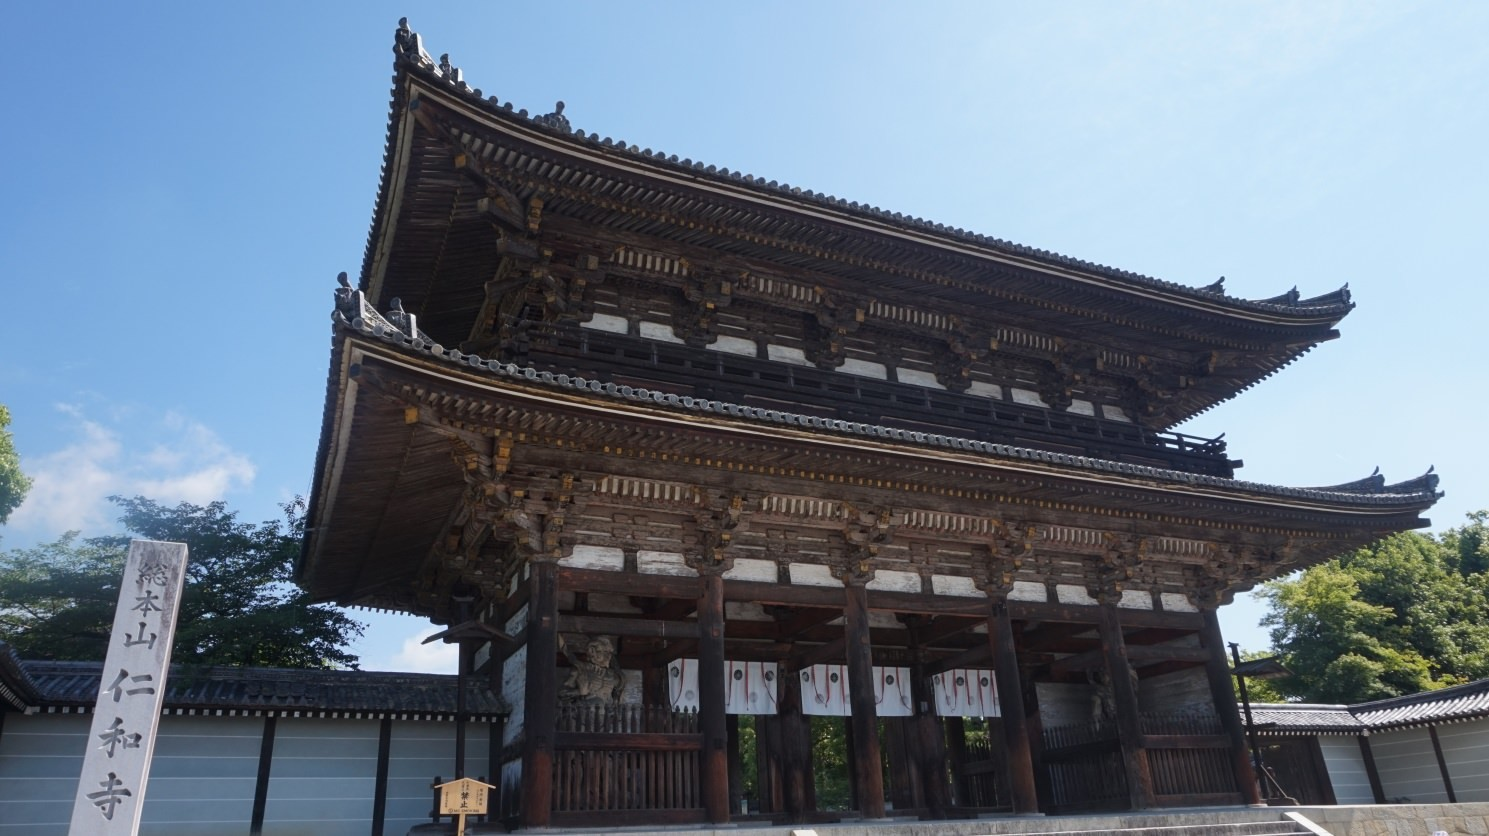 Ninna-ji Temple is a World Heritage Site deeply related with the Imperial Family that you have to visit when in Kyoto